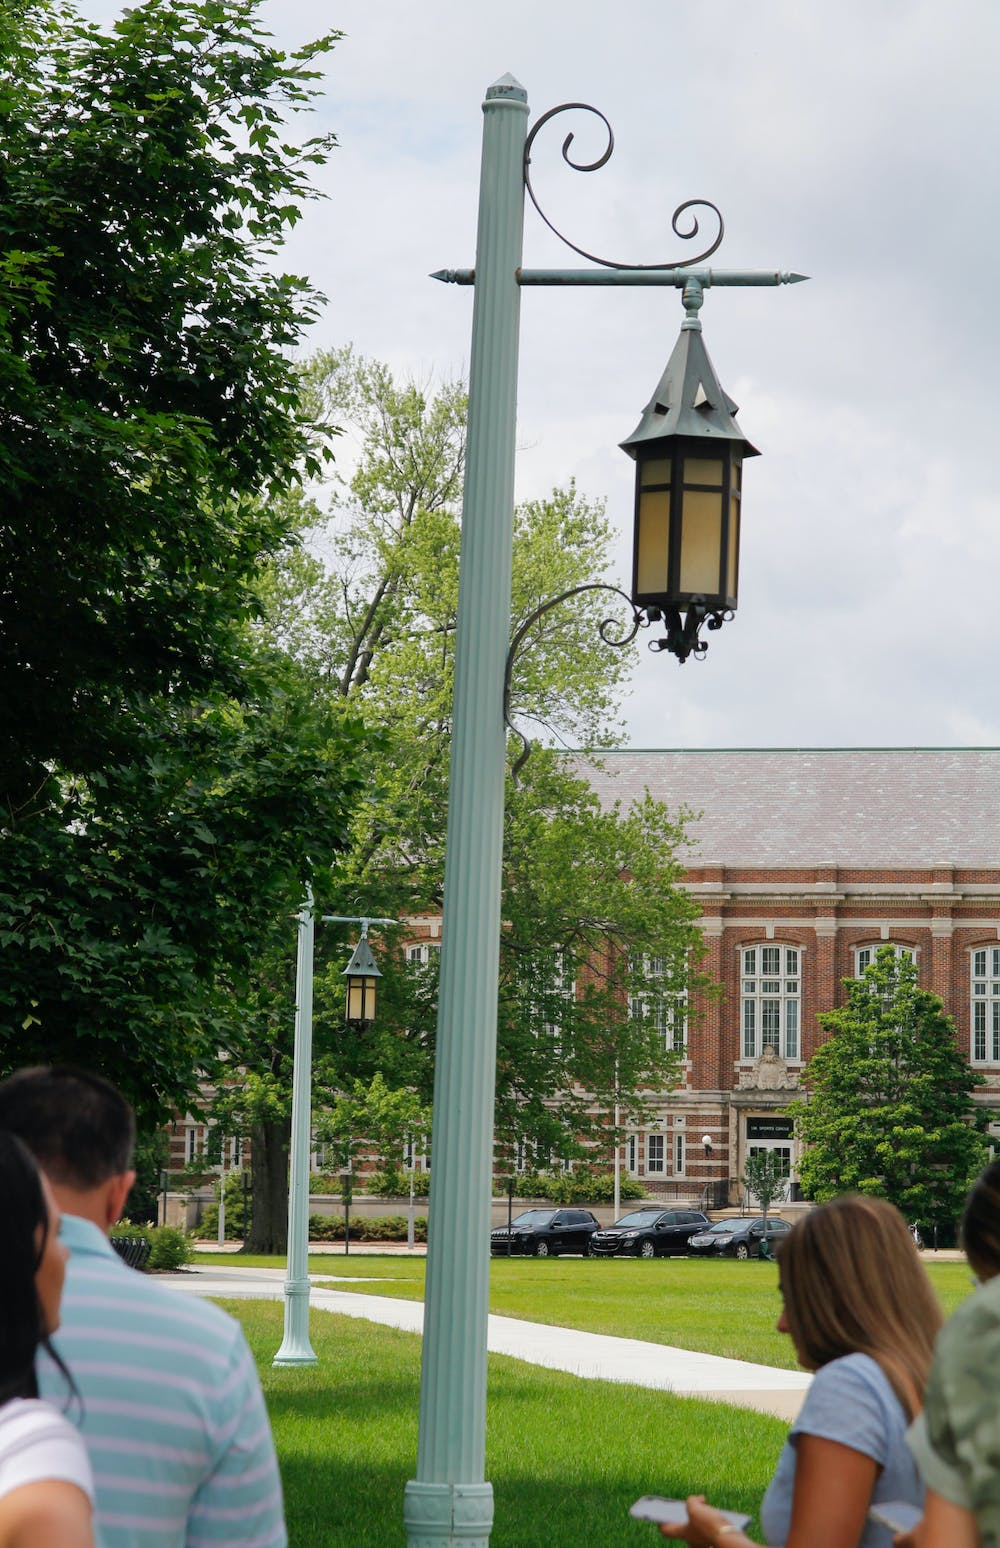 <p>MSU's classic green lamps illuminate campus and add to the historic look of North Neighborhood and central campus.&nbsp;</p>